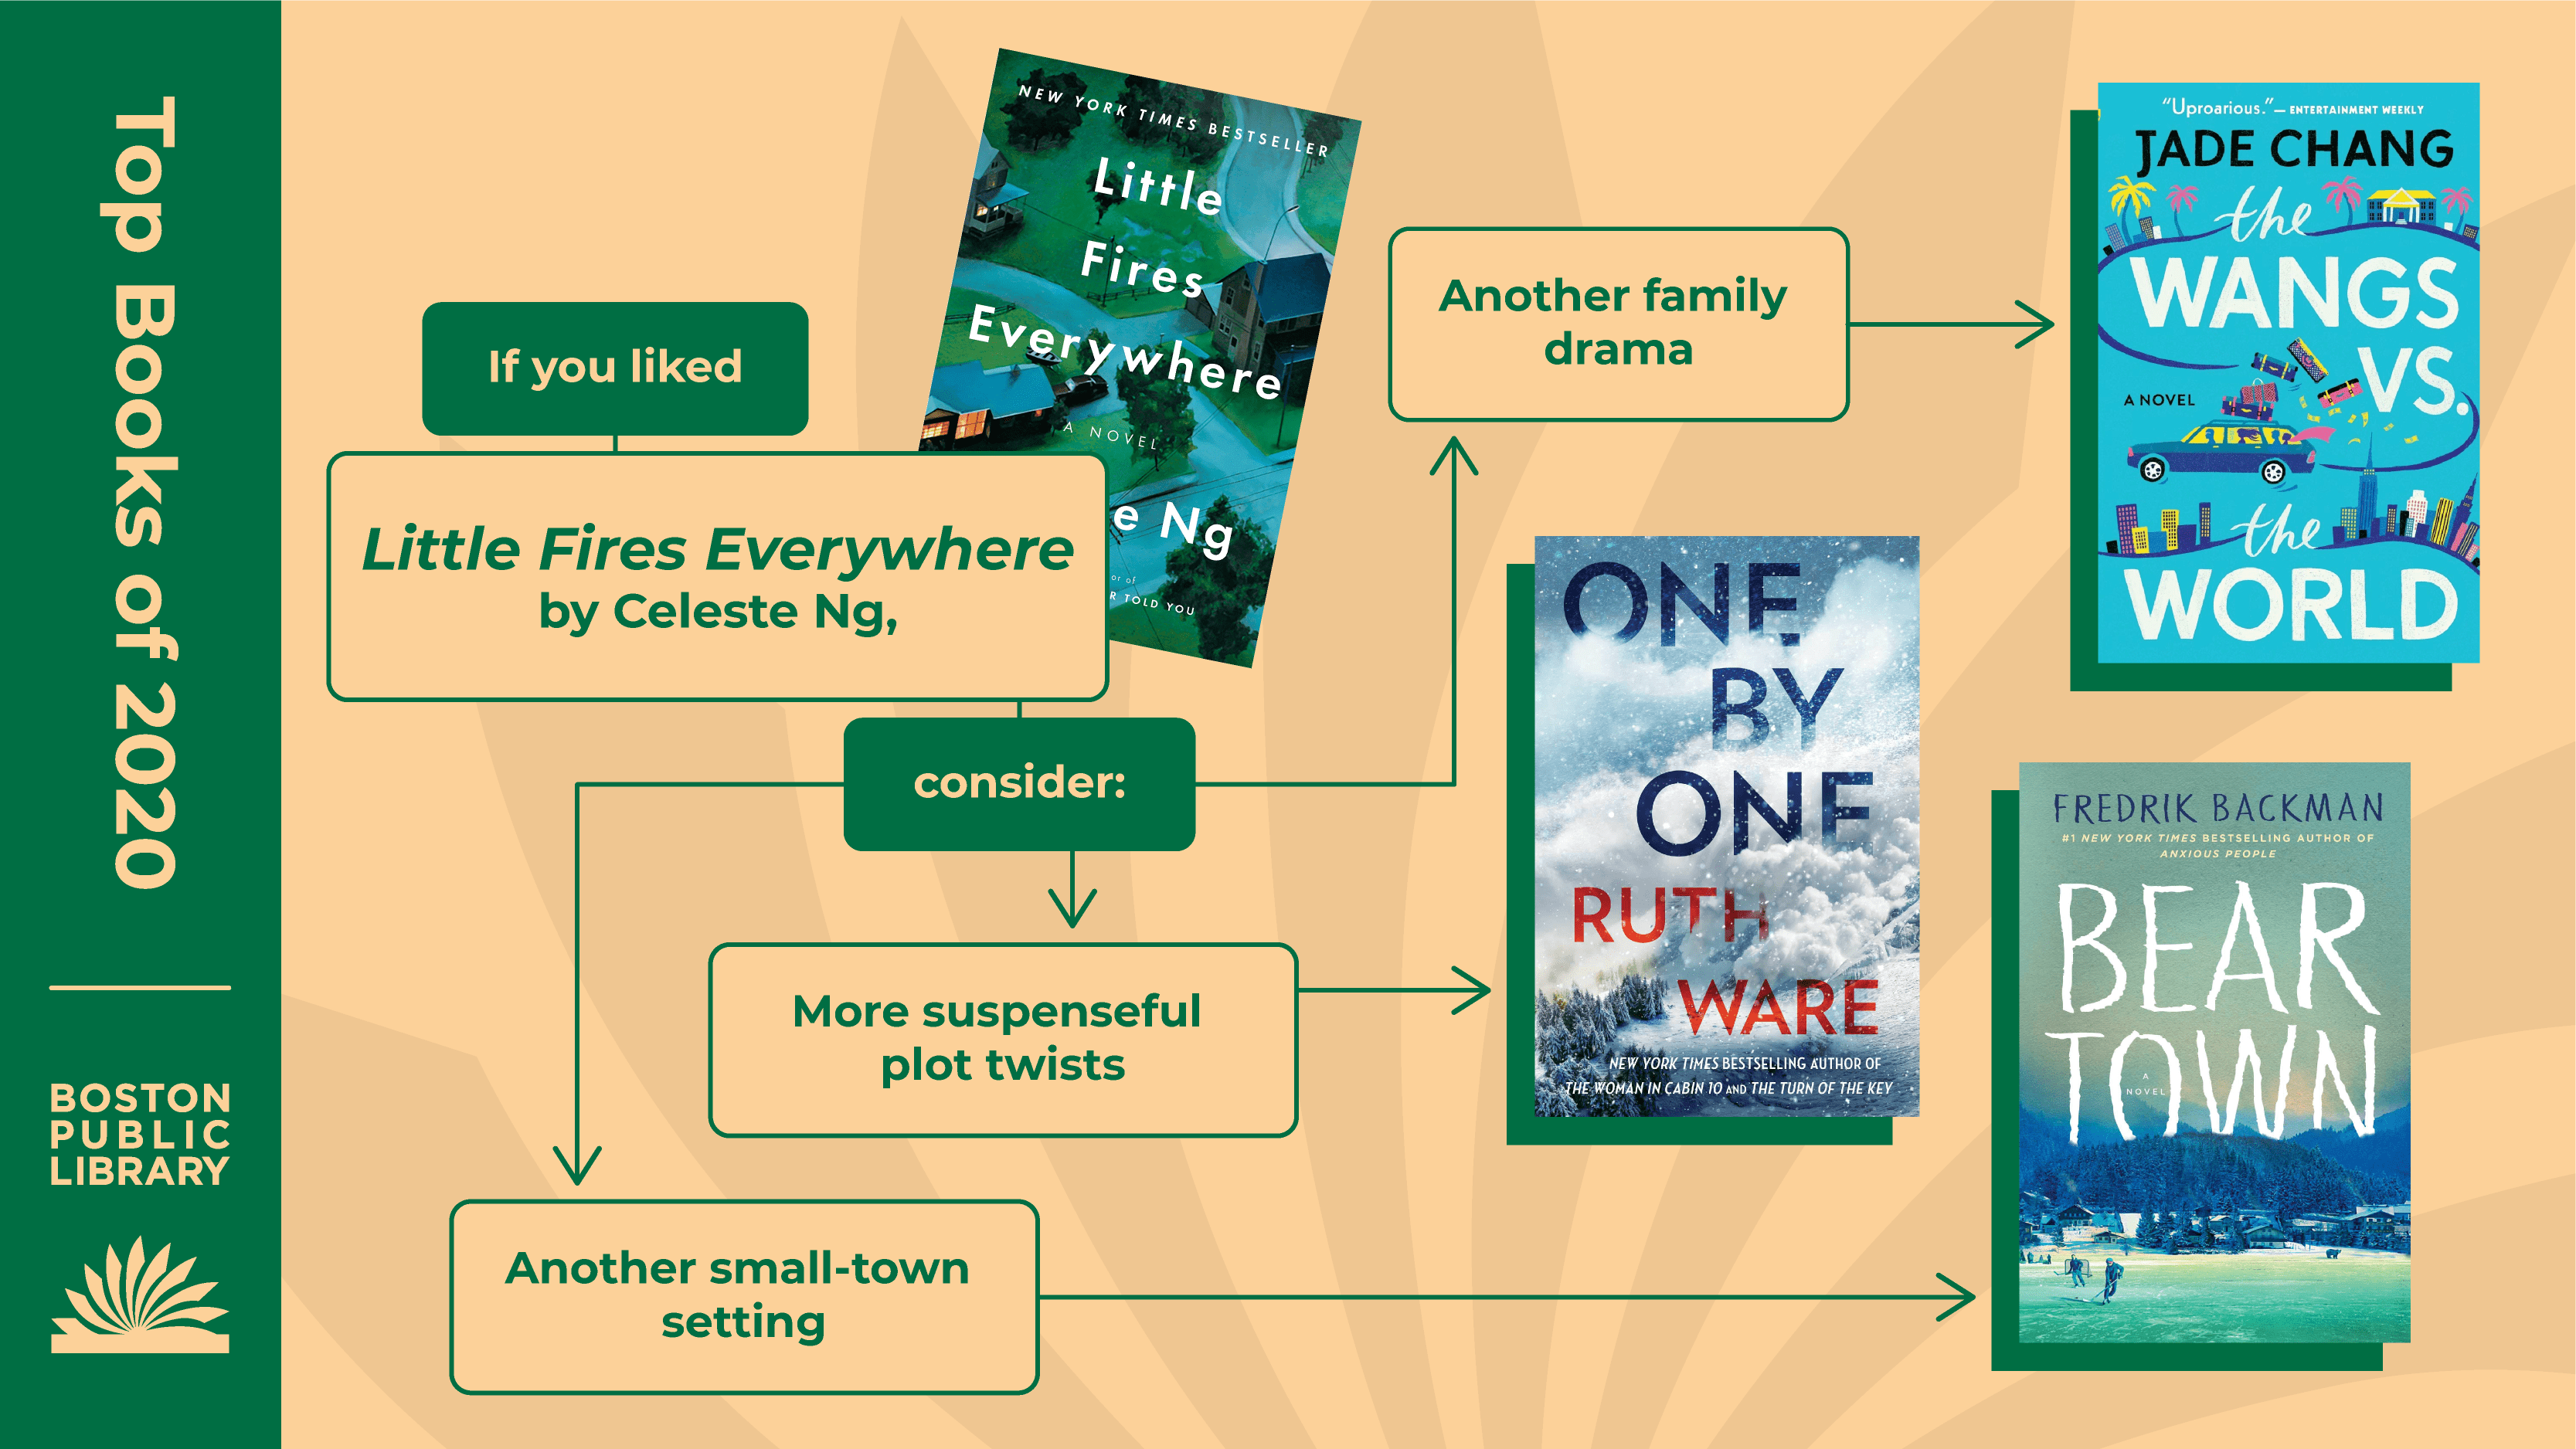 Top Books of 2020 | Boston Public Library | If you liked Little Fires Everywhere by Celeste Ng, consider: Another family drama (The Wangs vs. the World by Jade Chang), More suspenseful plot twists (One by One by Ruth Ware), Another small-town setting (Beartown by Fredrik Backman).